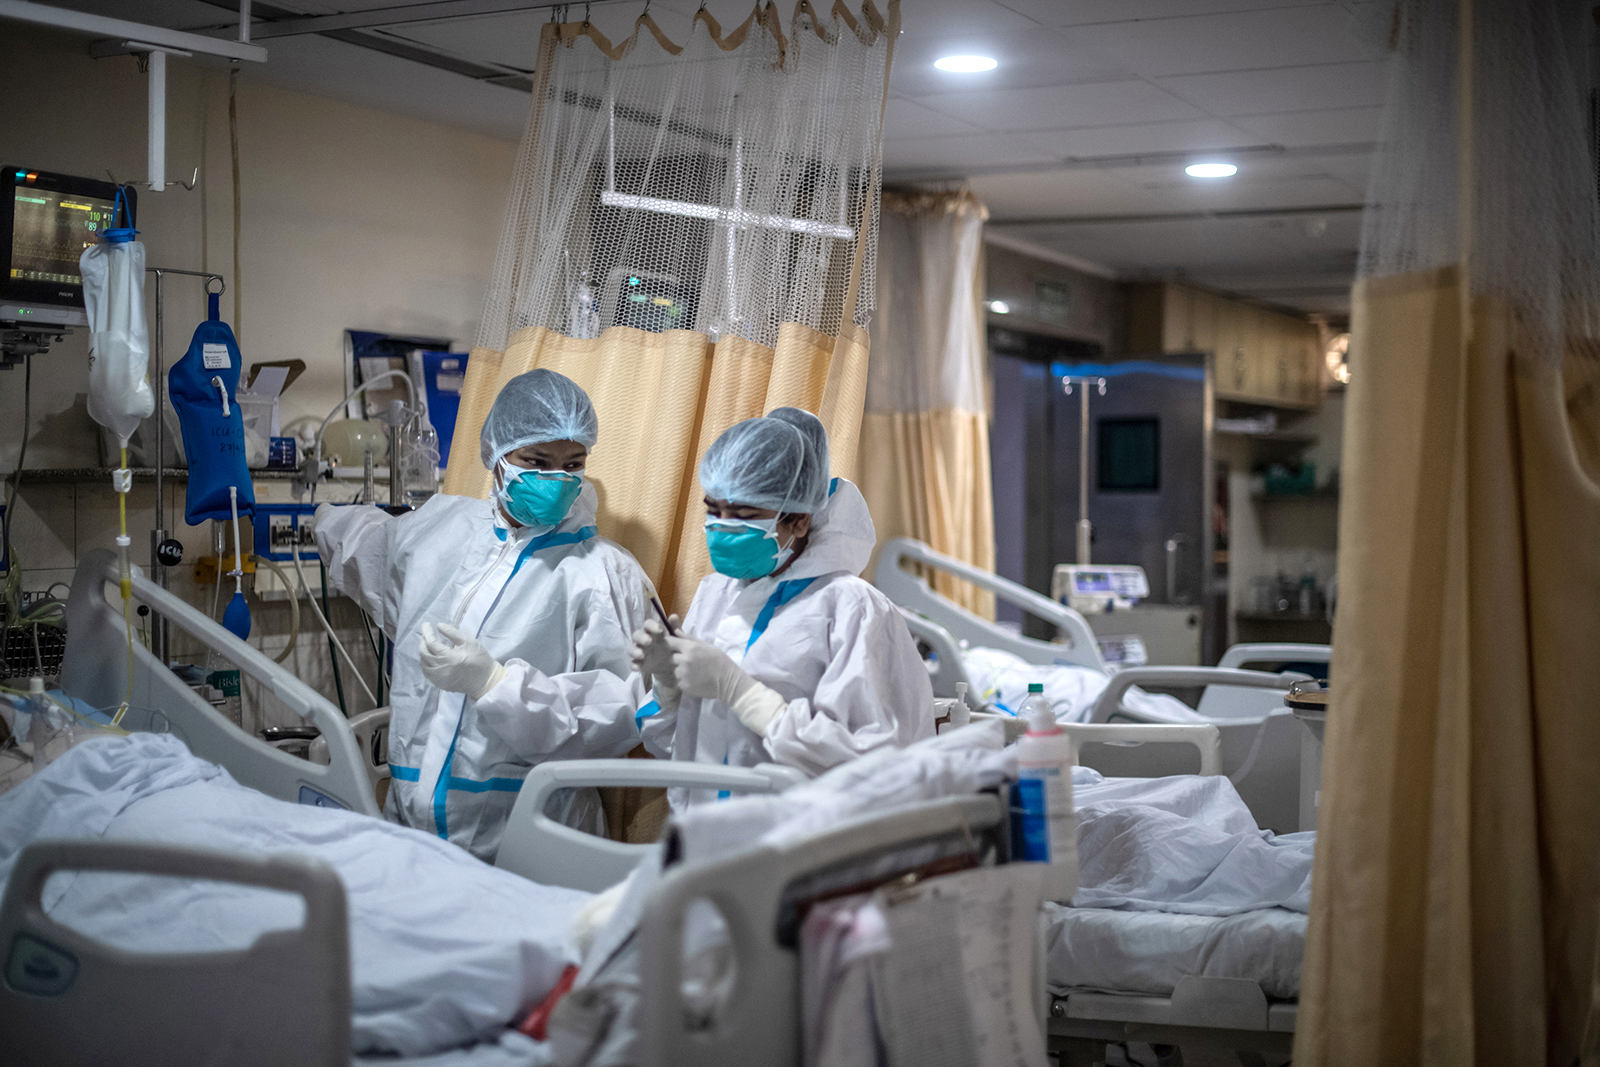 Medical staff attend to Covid-19 patients in the ICU ward at the Holy Family hospital in New Delhi, India, on May 06.